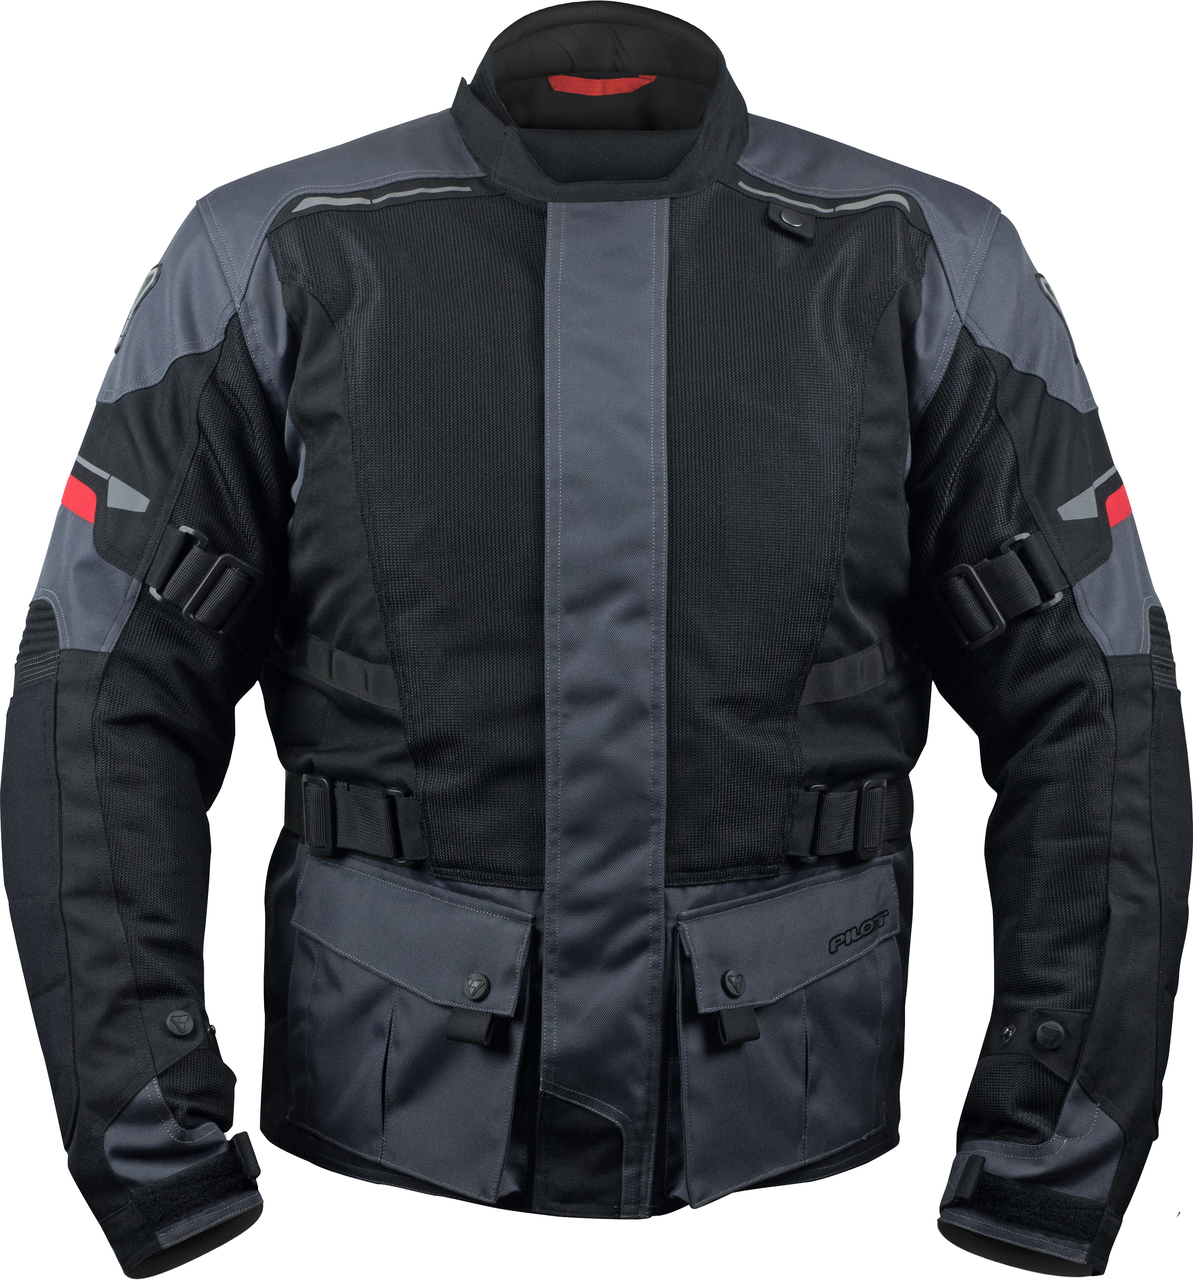 ELIPSOL AIR JACKET MOTORCYCLE ADVENTURE TOURING JACKET - GRAY, S